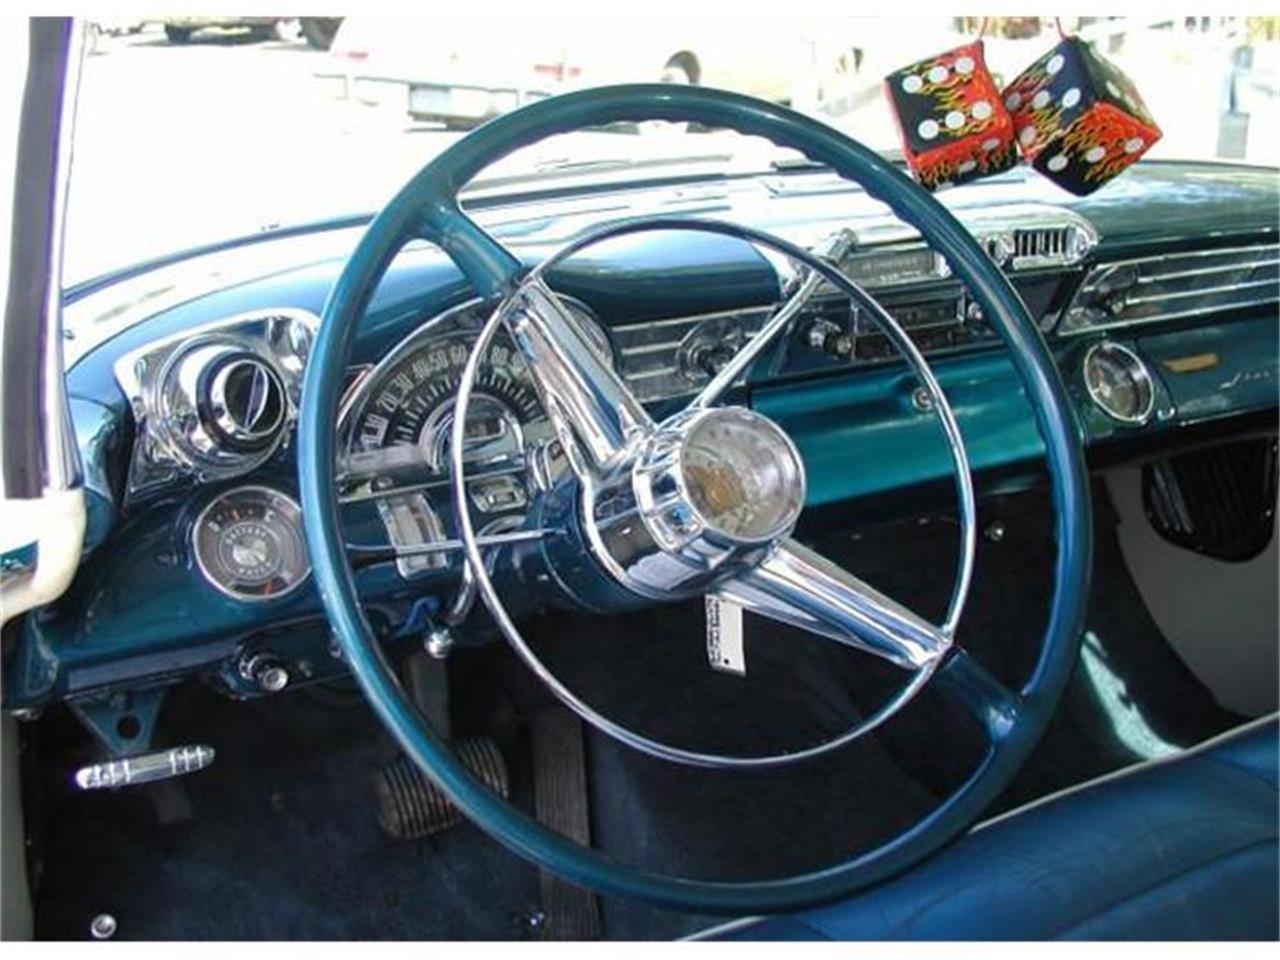 Large Picture of 1956 Pontiac Safari located in Quartzsite Arizona - $69,980.00 - 97OL